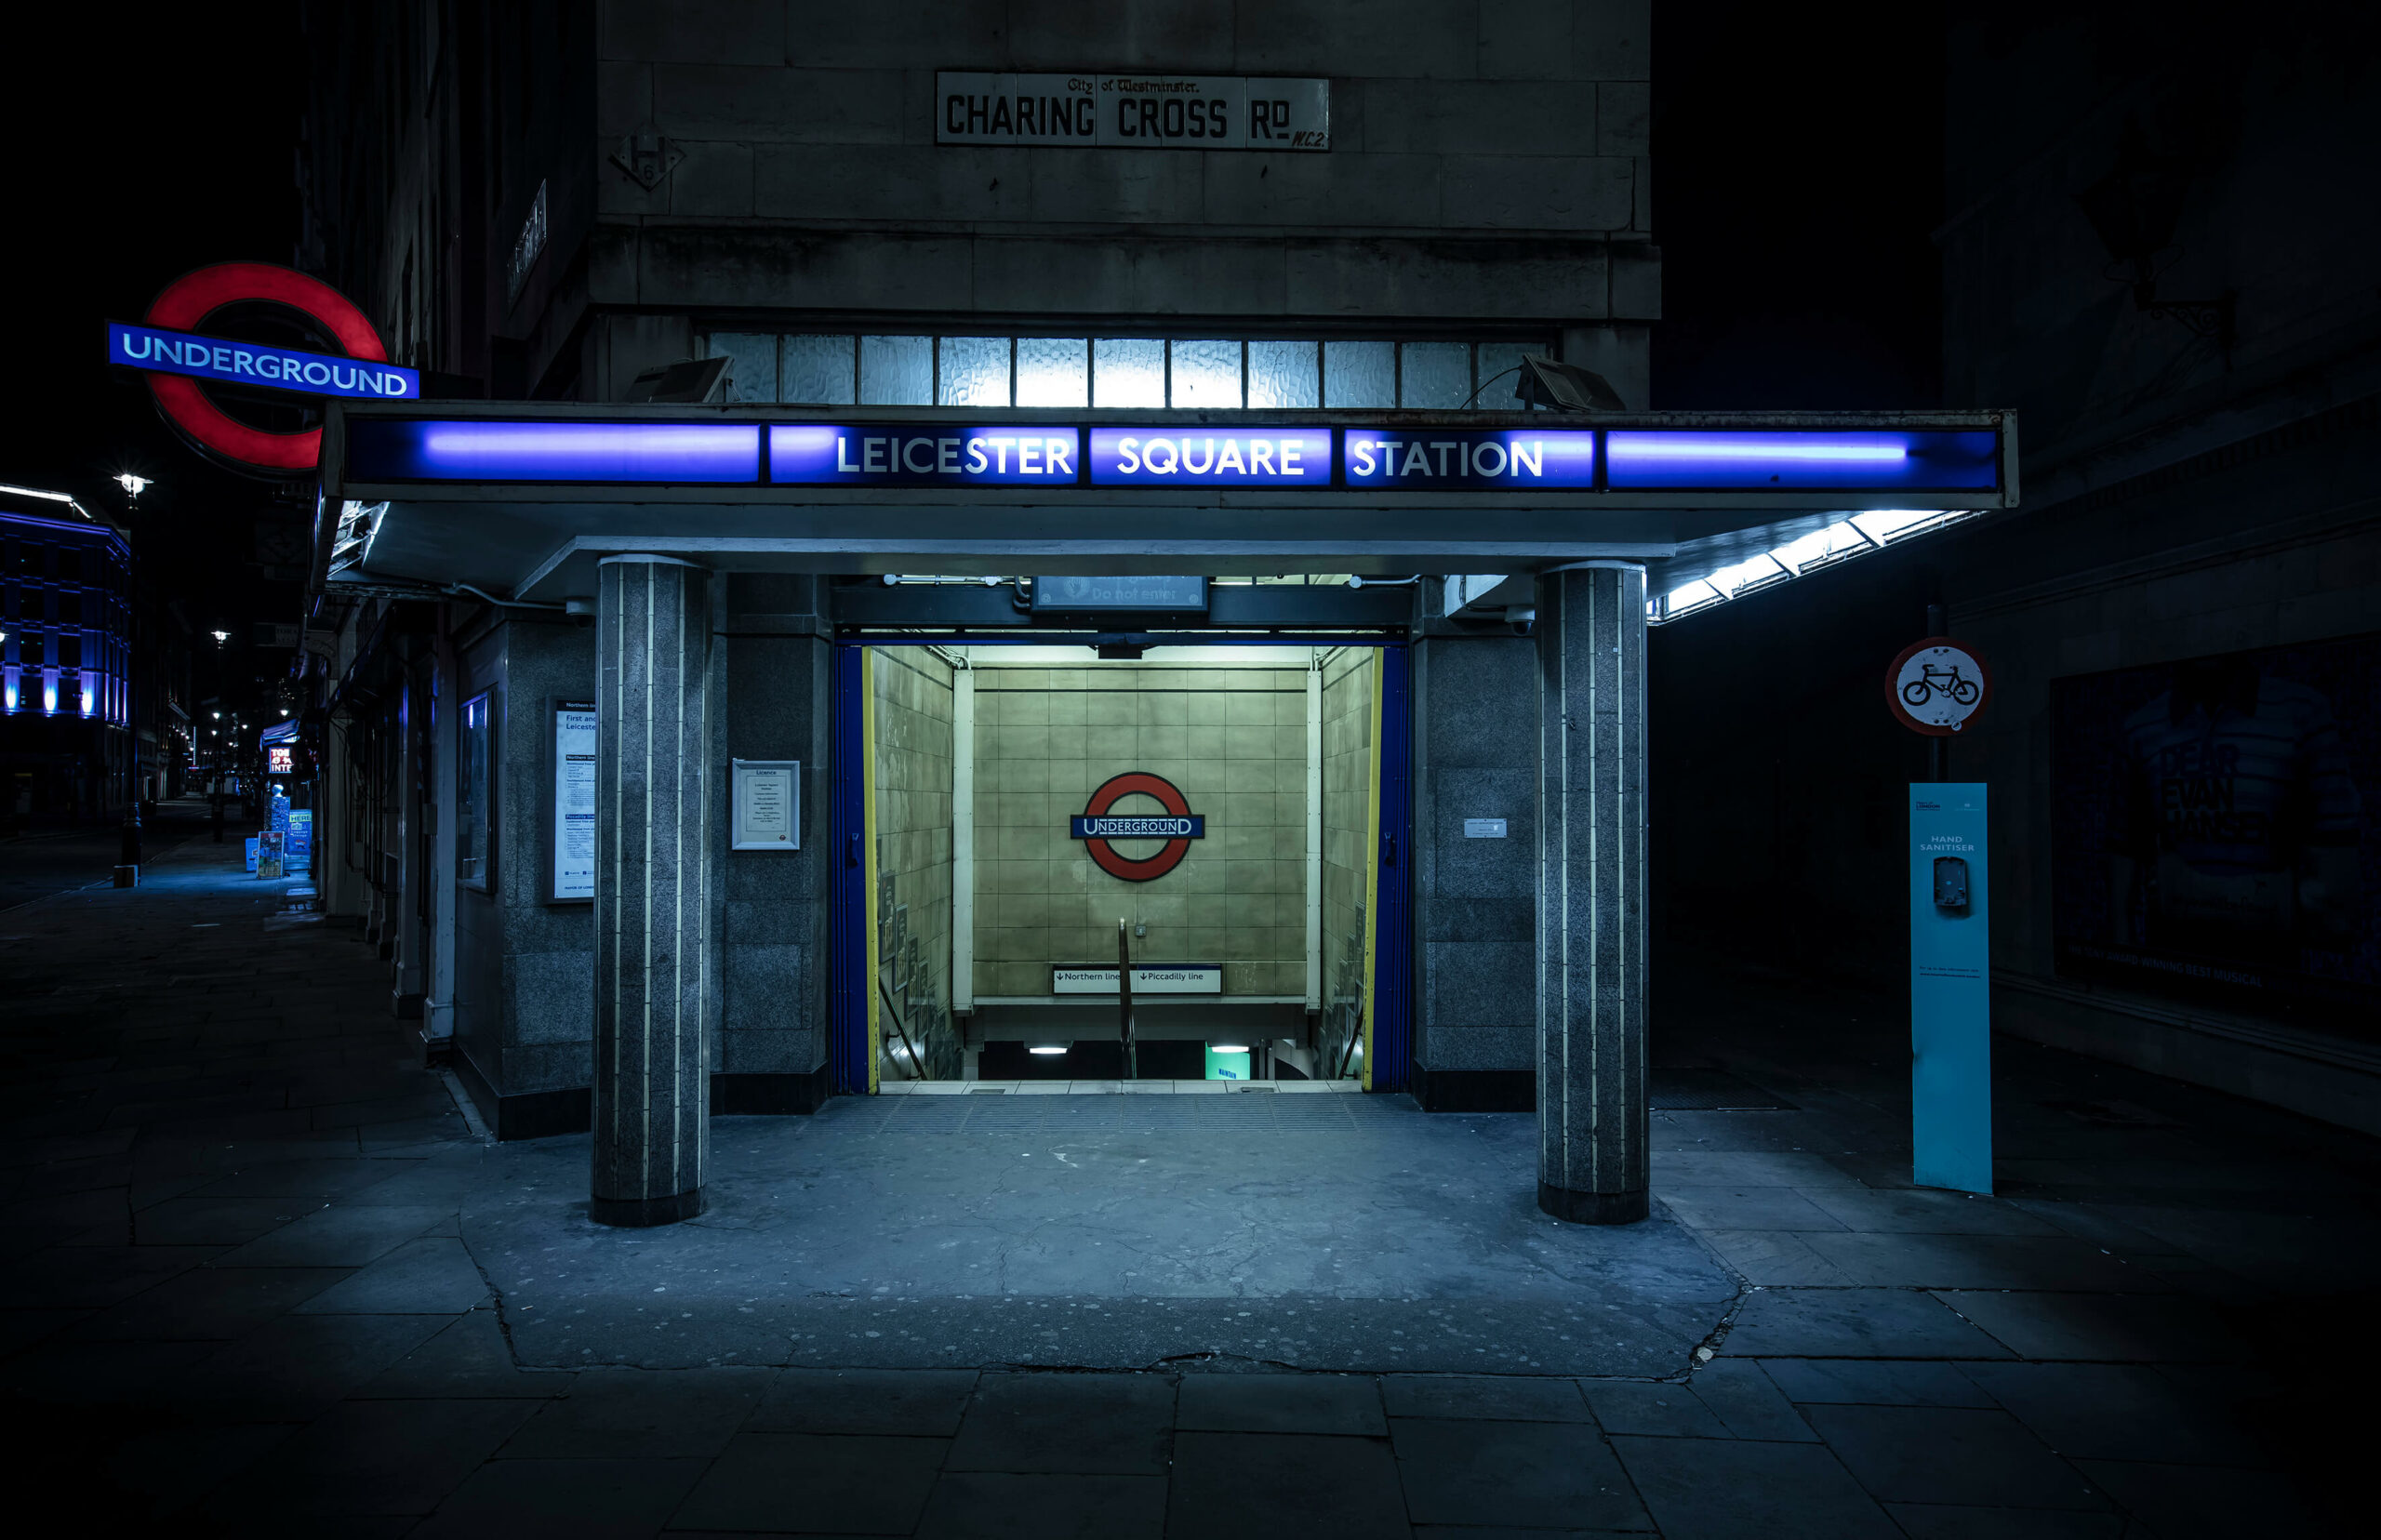 A deserted Leicester Square underground station